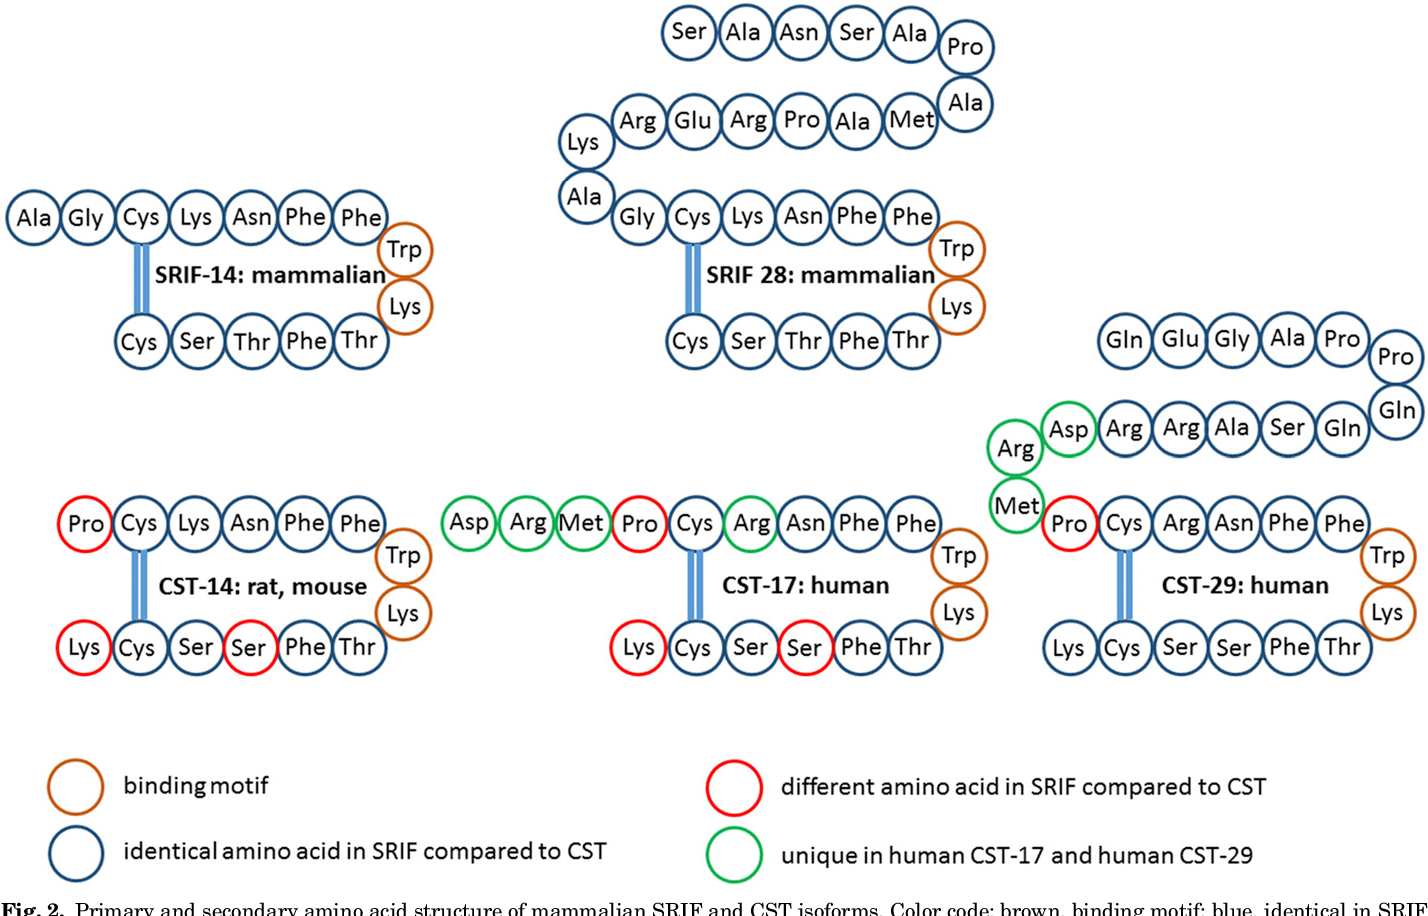 Fig. 2. Primary and secondary amino acid structure of mammalian SRIF and CST isoforms. Color code: brown, binding motif; blue, identical in SRIF and CST; red, different in CST compared with SRIF; green, not present in rat/mouse CST-14.